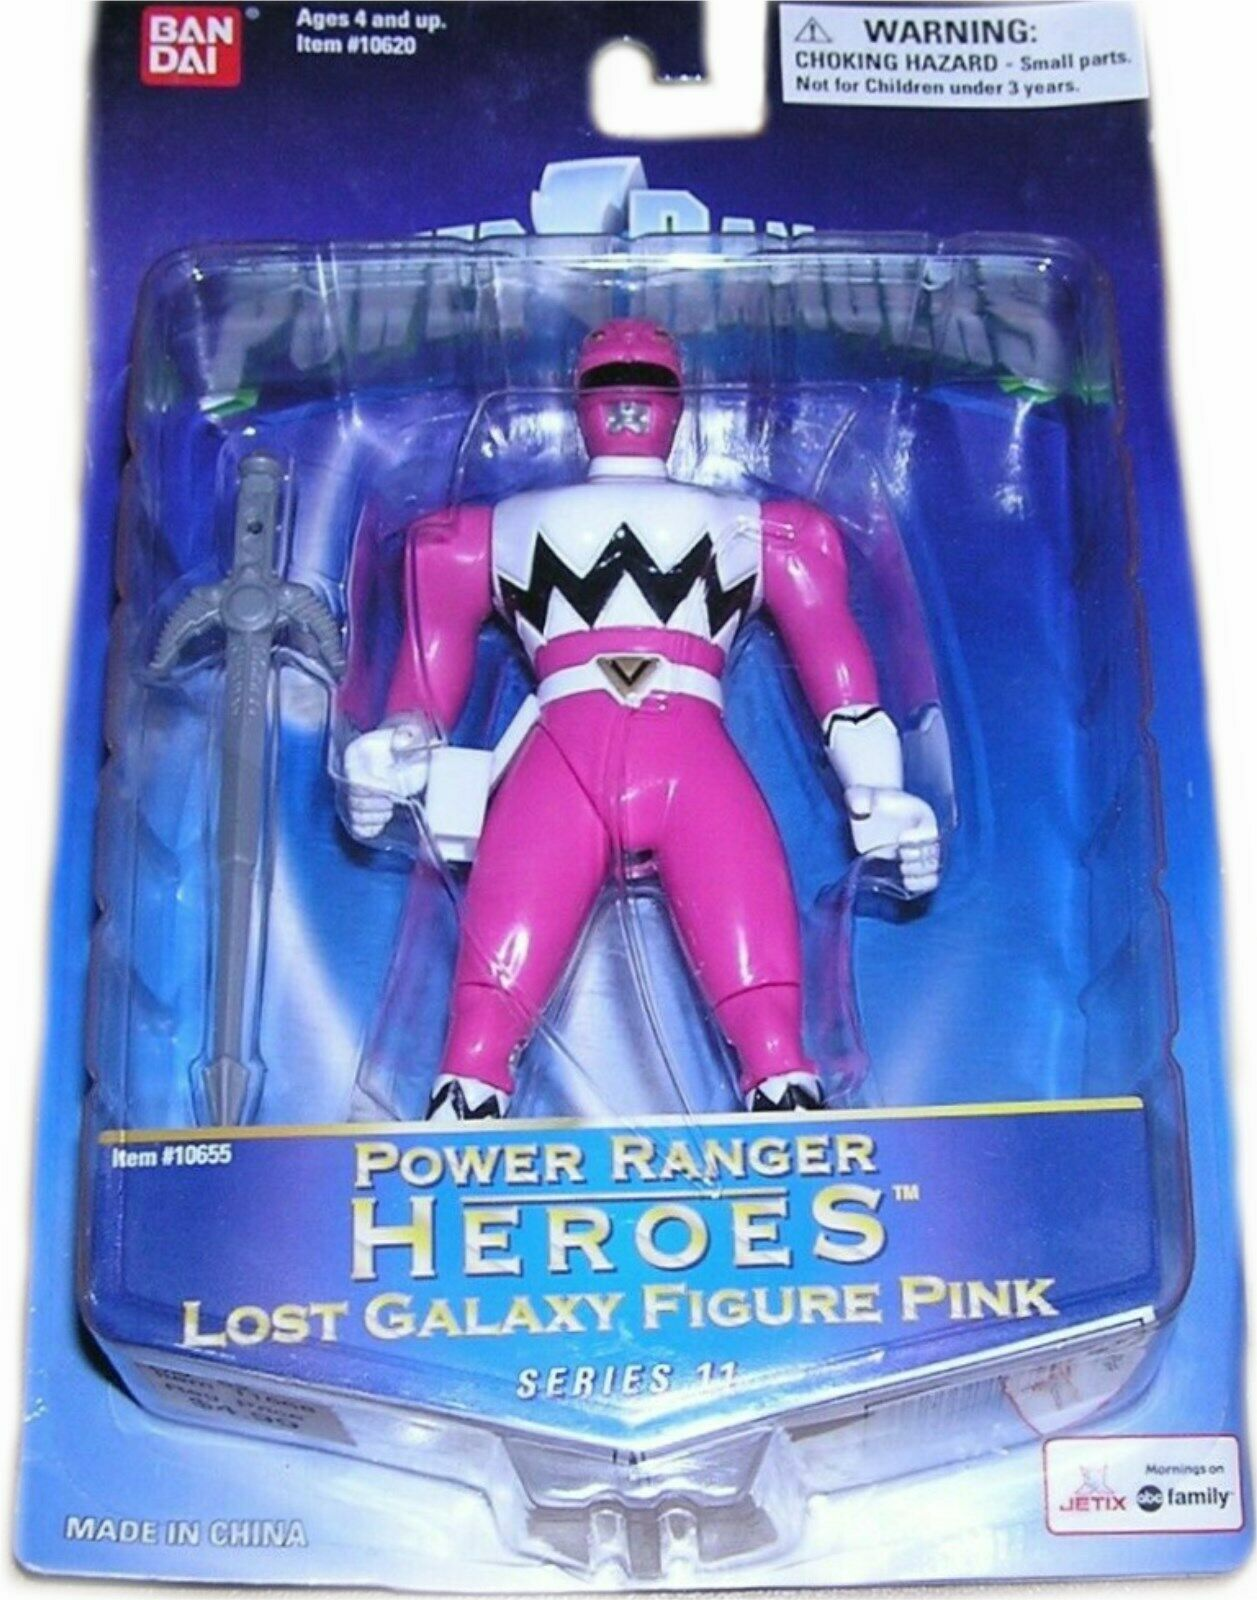 Power Rangers Lost Galaxy rosa Heroes Ranger Series 11 New Factory Sealed 2004